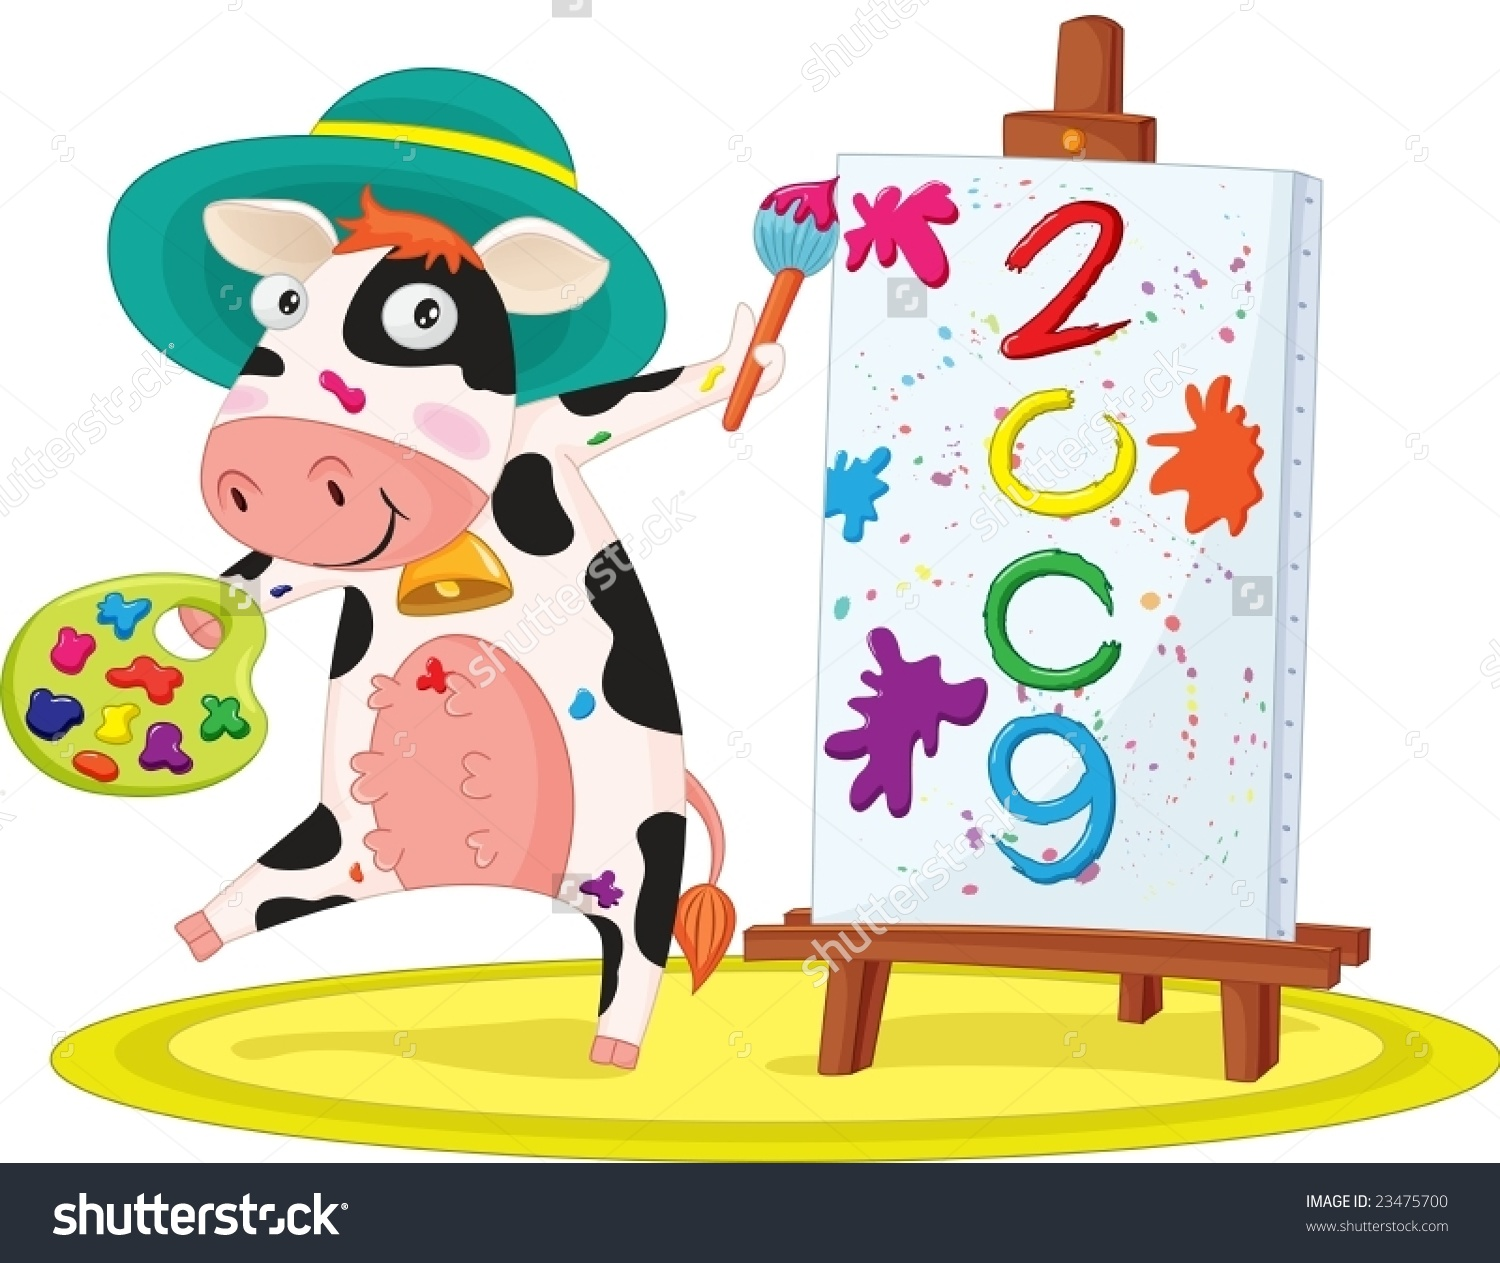 Illustration Of Cow Painting Happy New Year.